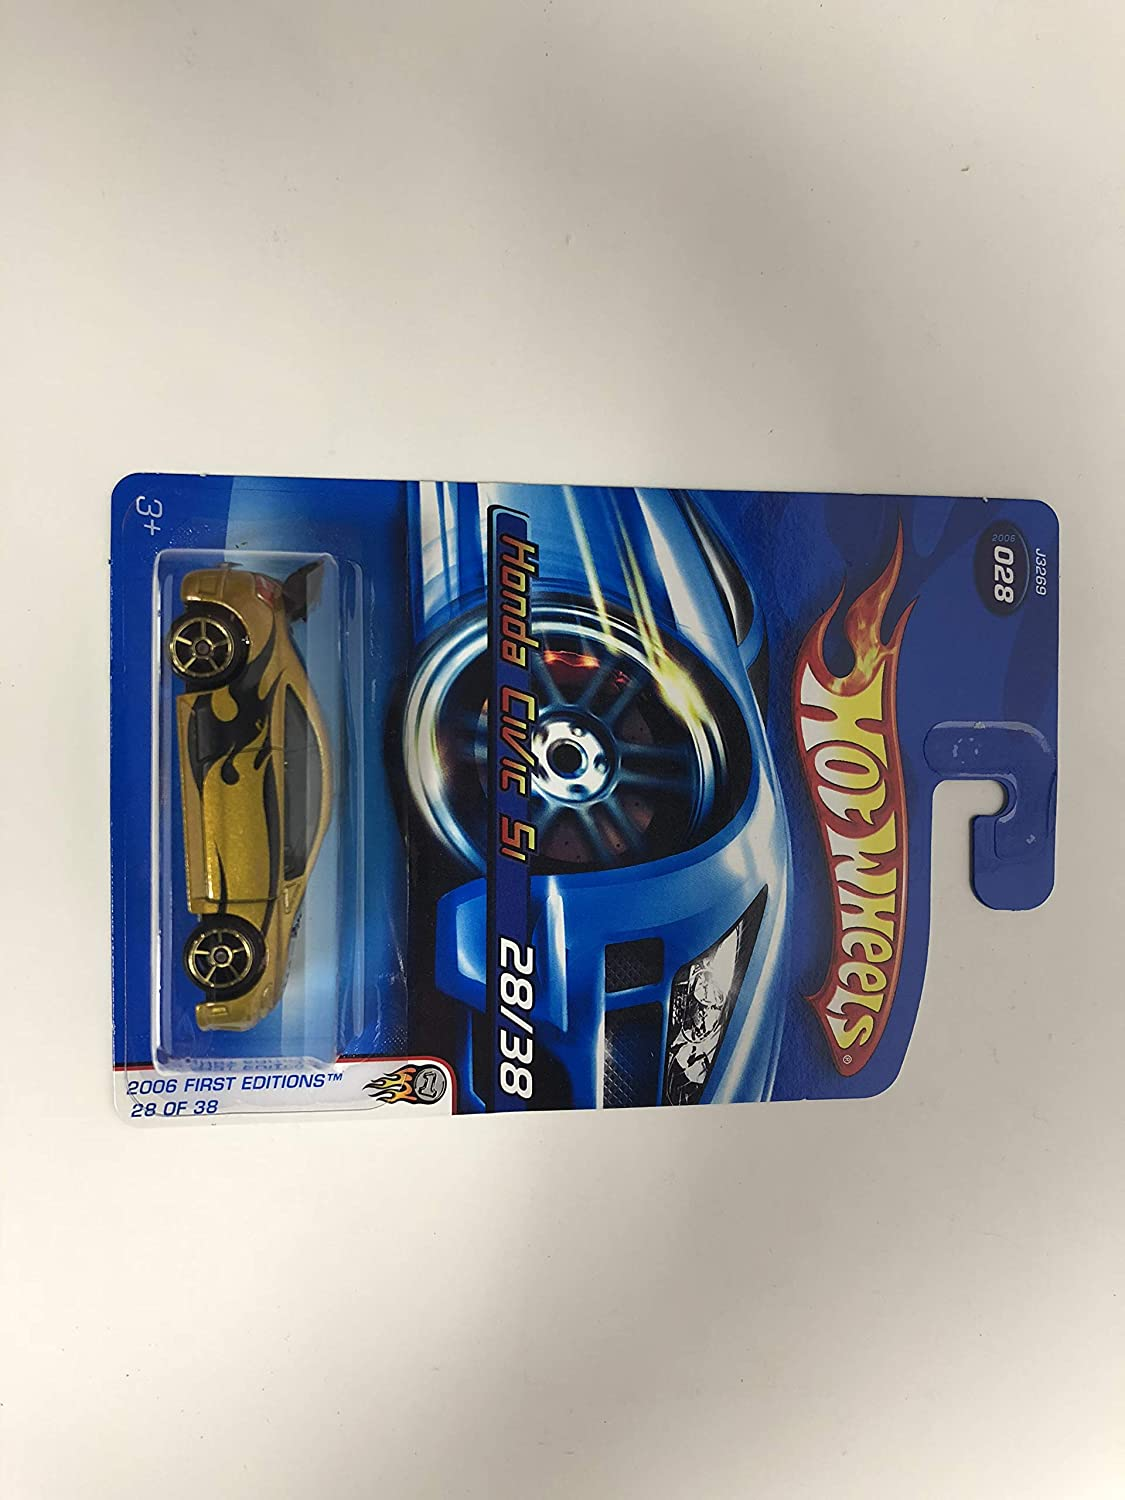 Honda Civic SI No. 028 Hot Wheels 2006 First Edition diecast 1/64 scale car